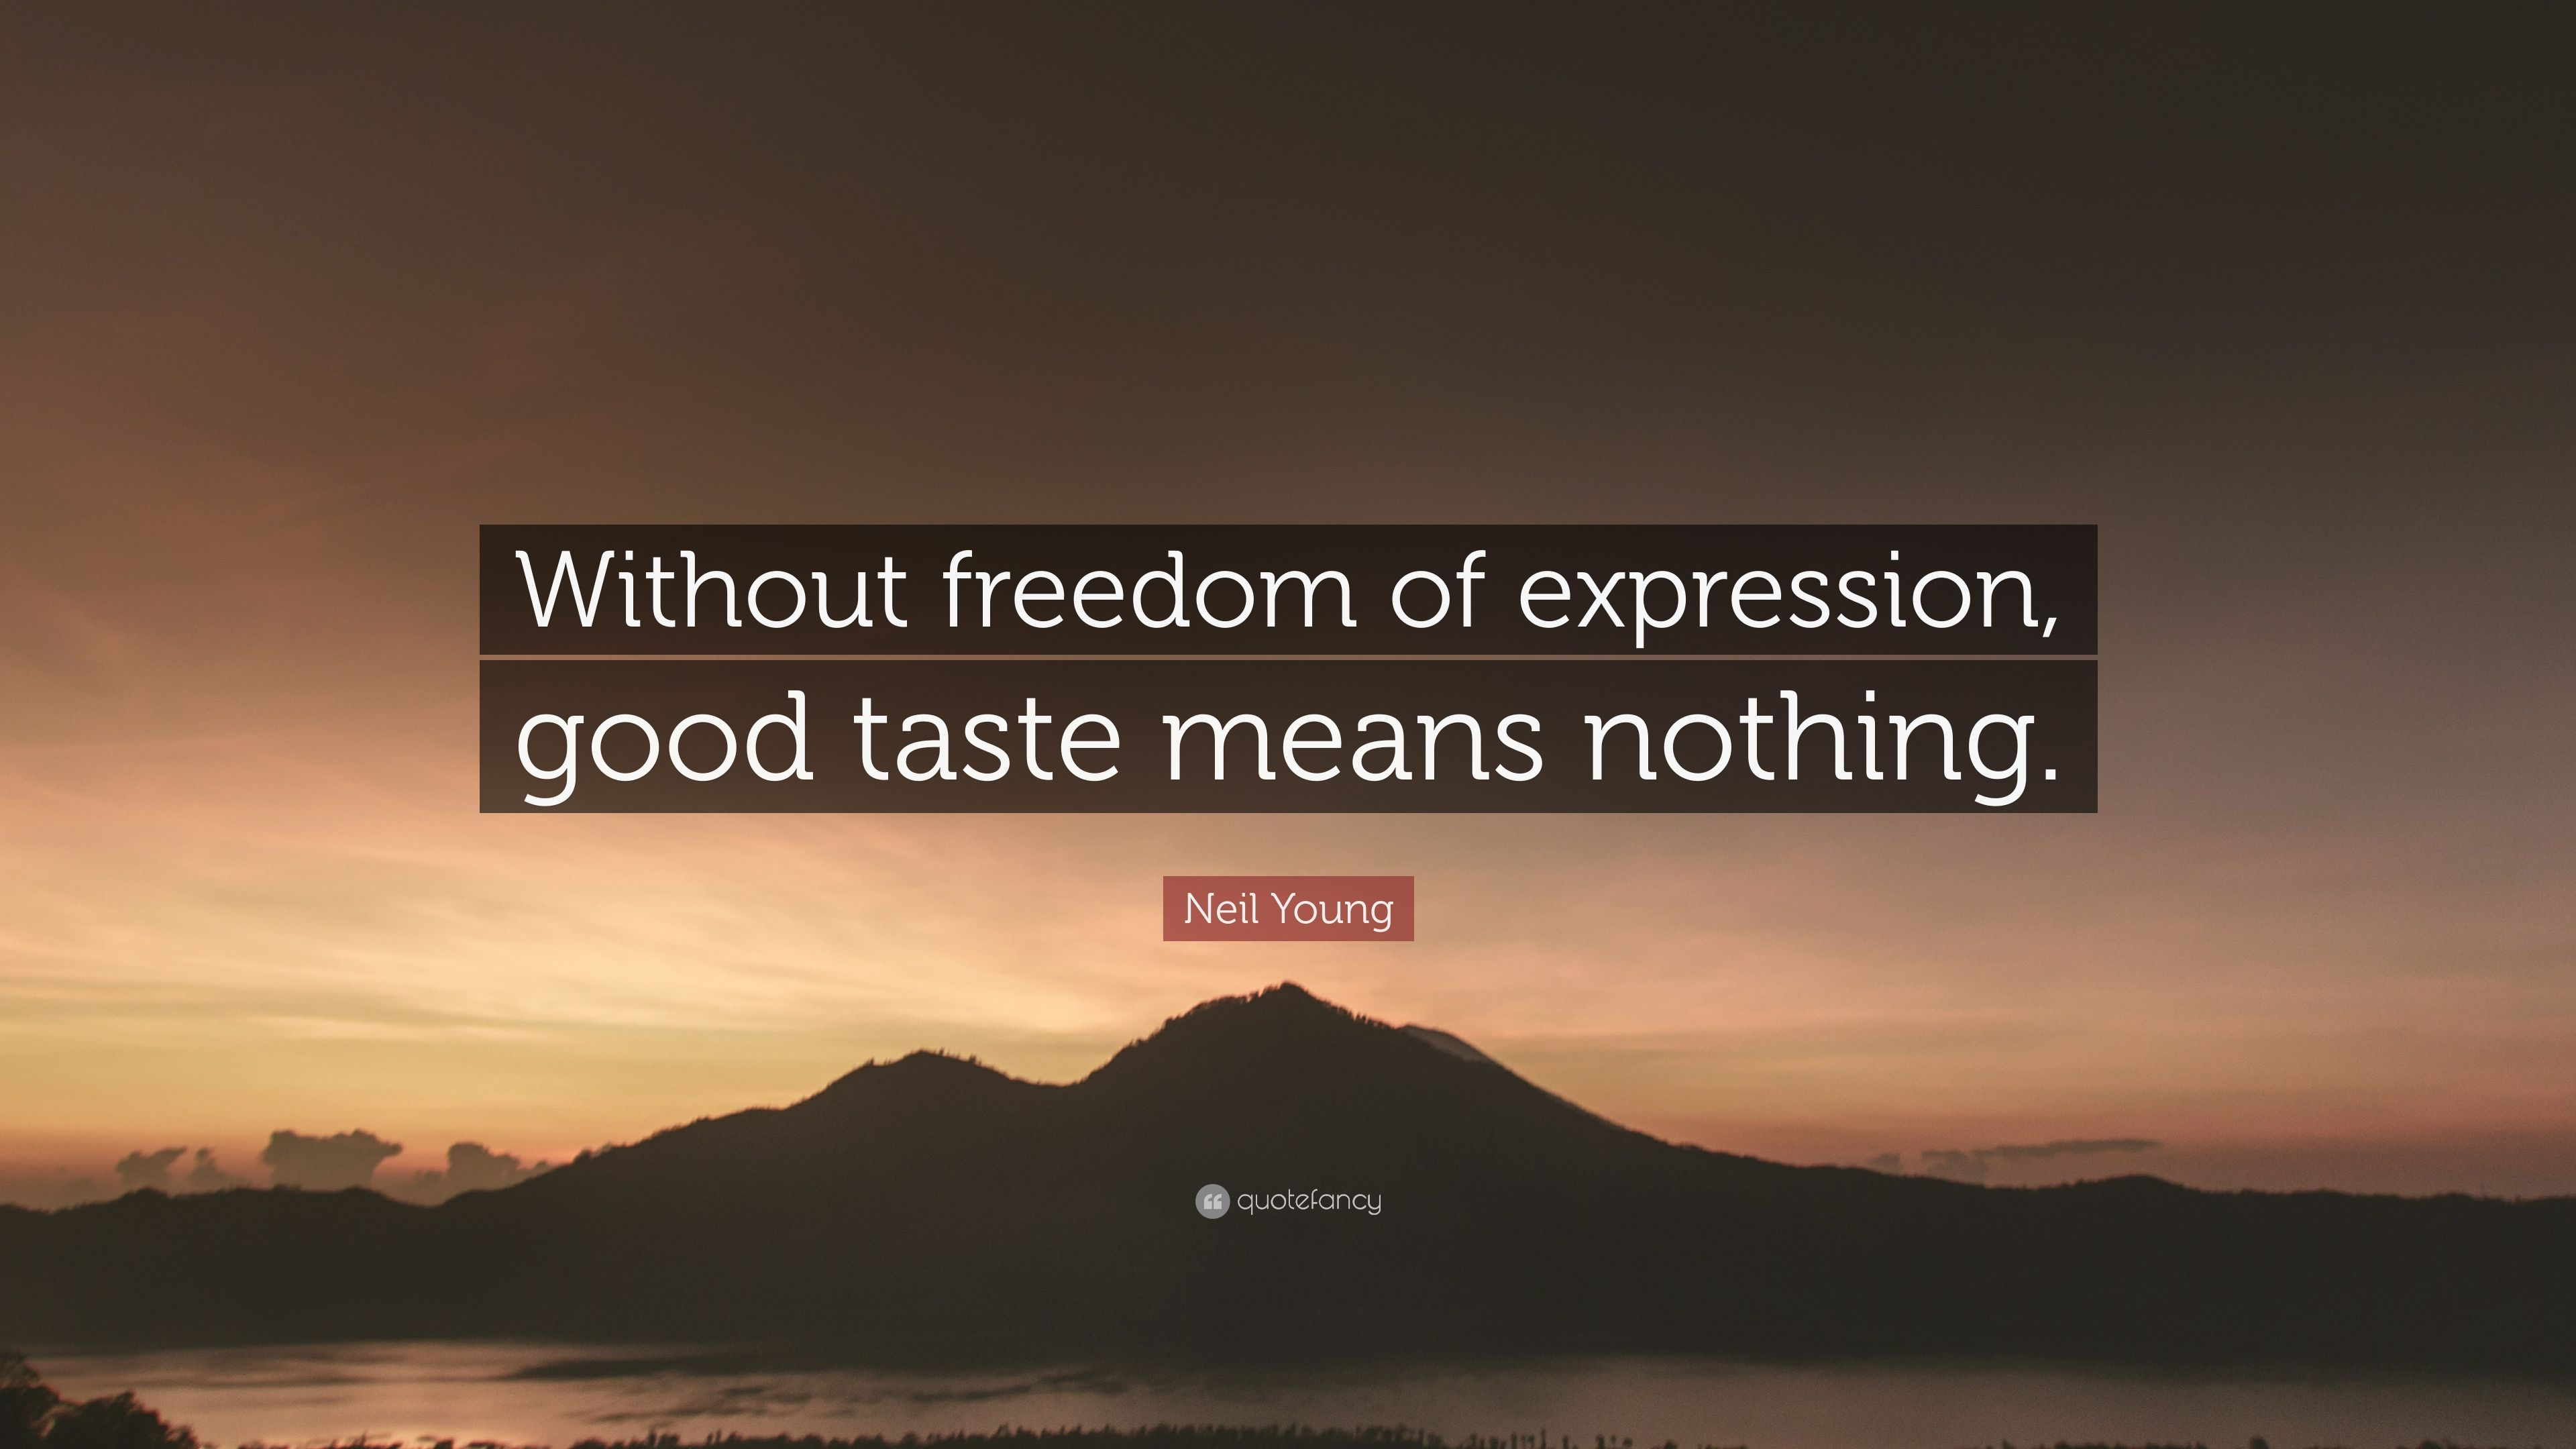 Neil Young Quote Without Freedom Of Expression Good Taste Means